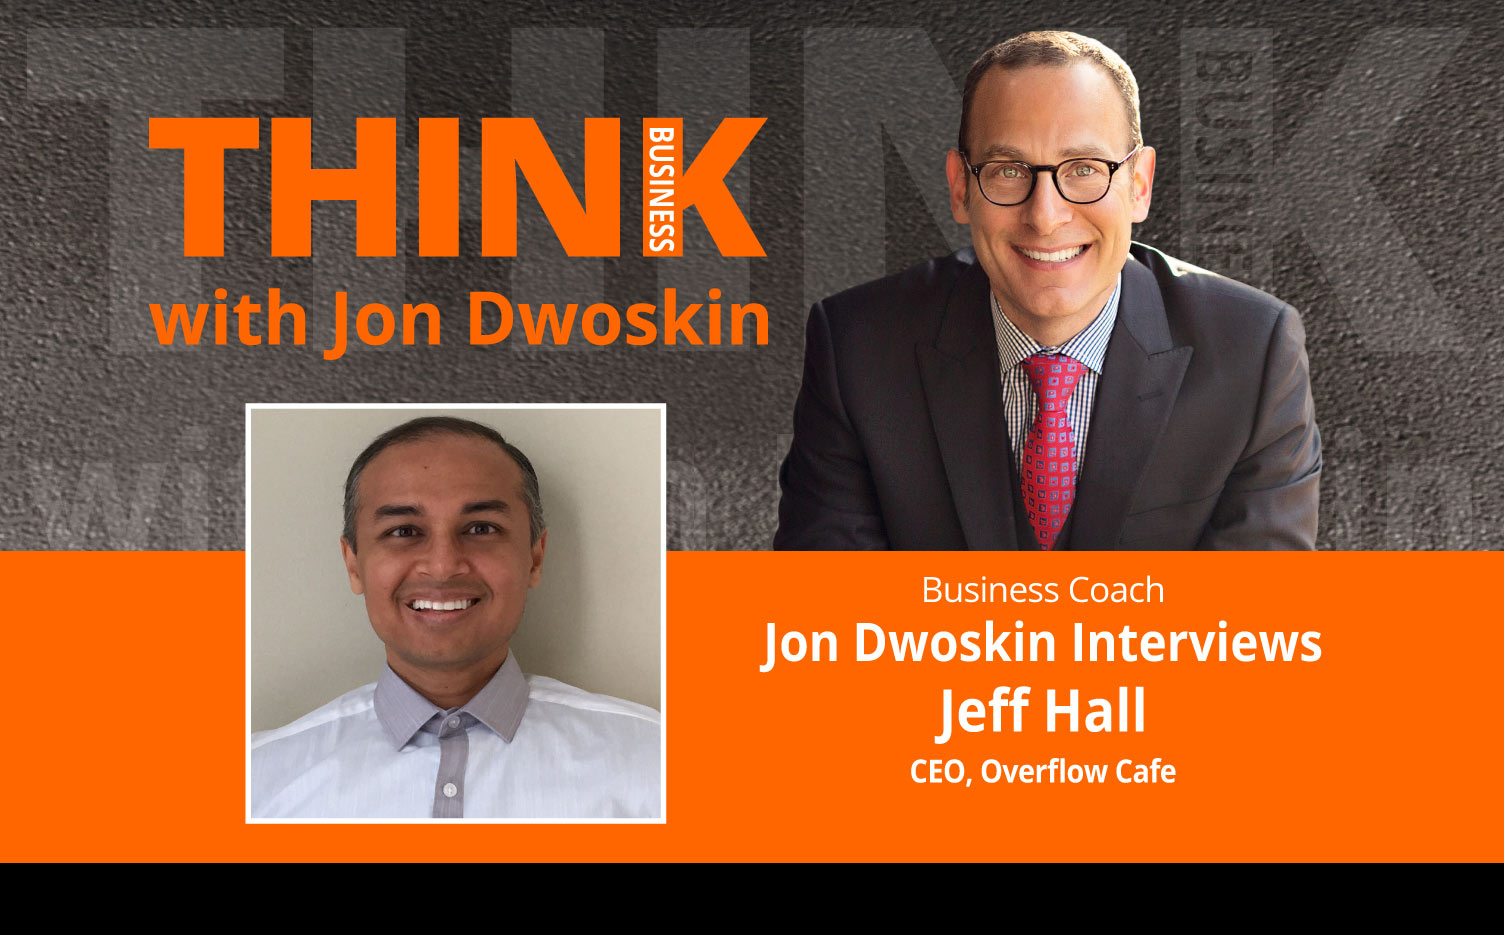 THINK Business Podcast: Jon Dwoskin Interviews Jeff Hall, CEO, Overflow Cafe